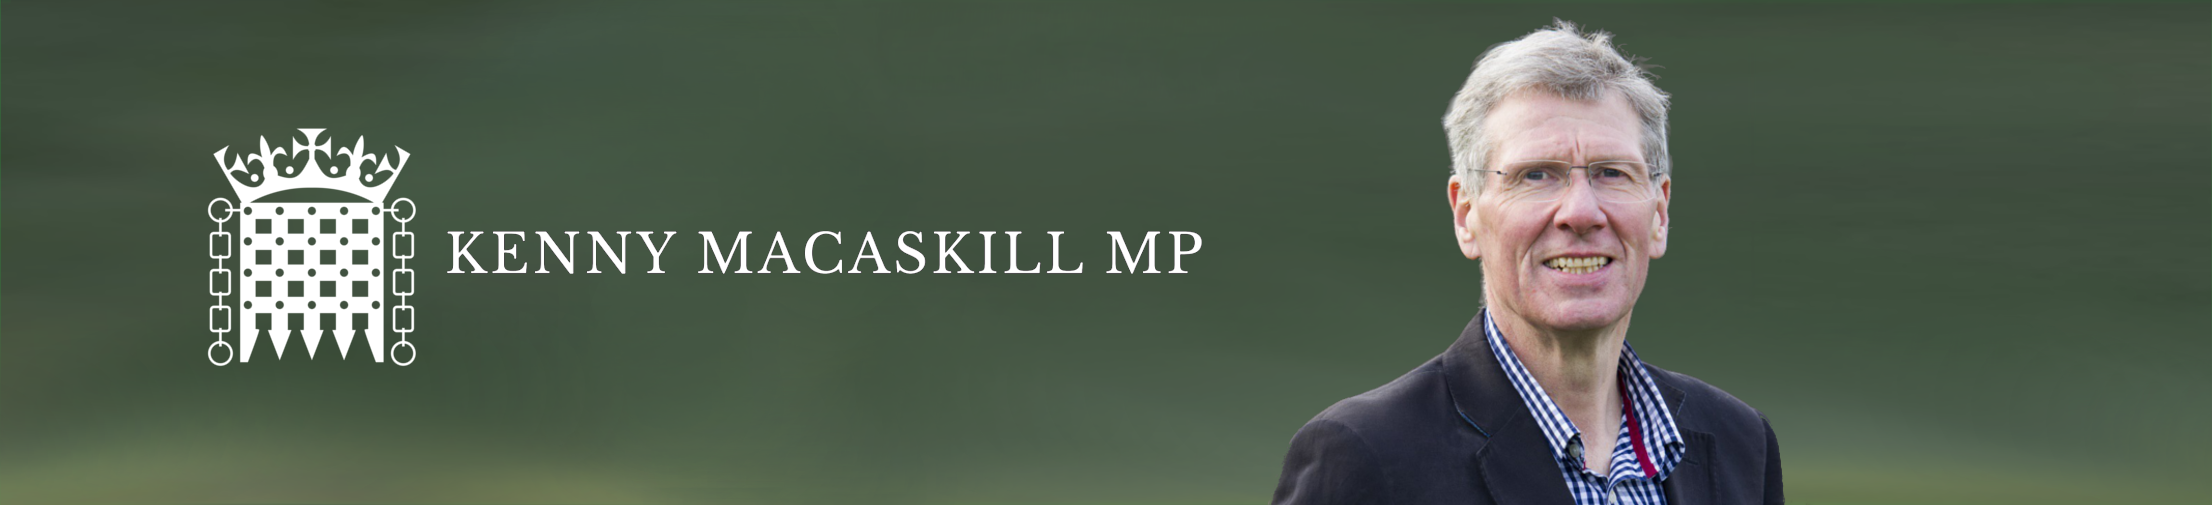 Kenny MacAskill MP